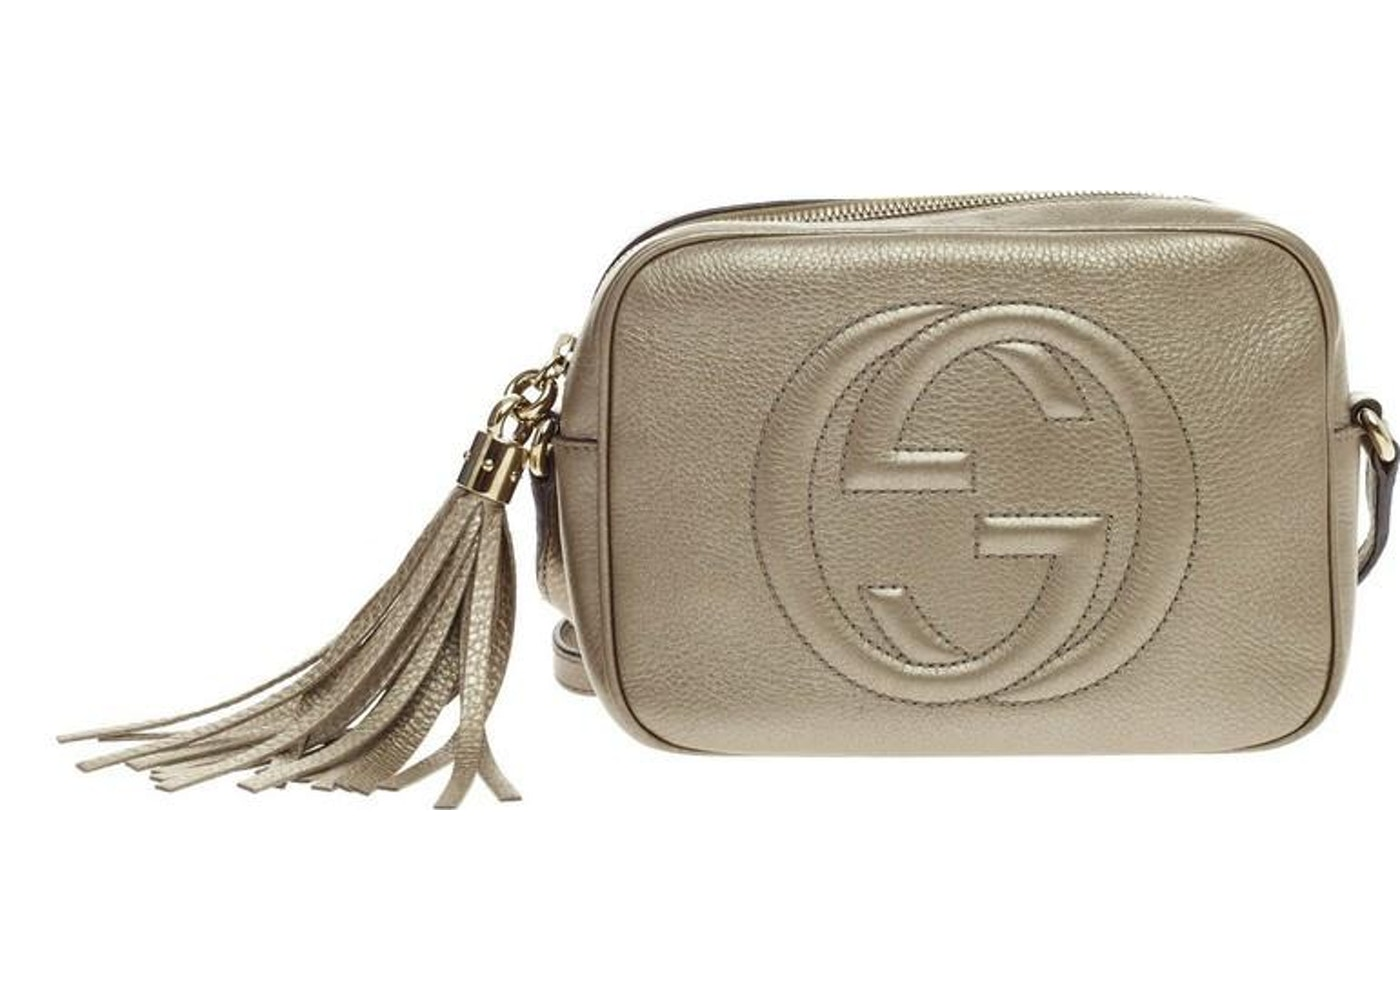 3f91e690f Gucci Soho Disco Crossbody Small Metallic Gold. Small Metallic Gold